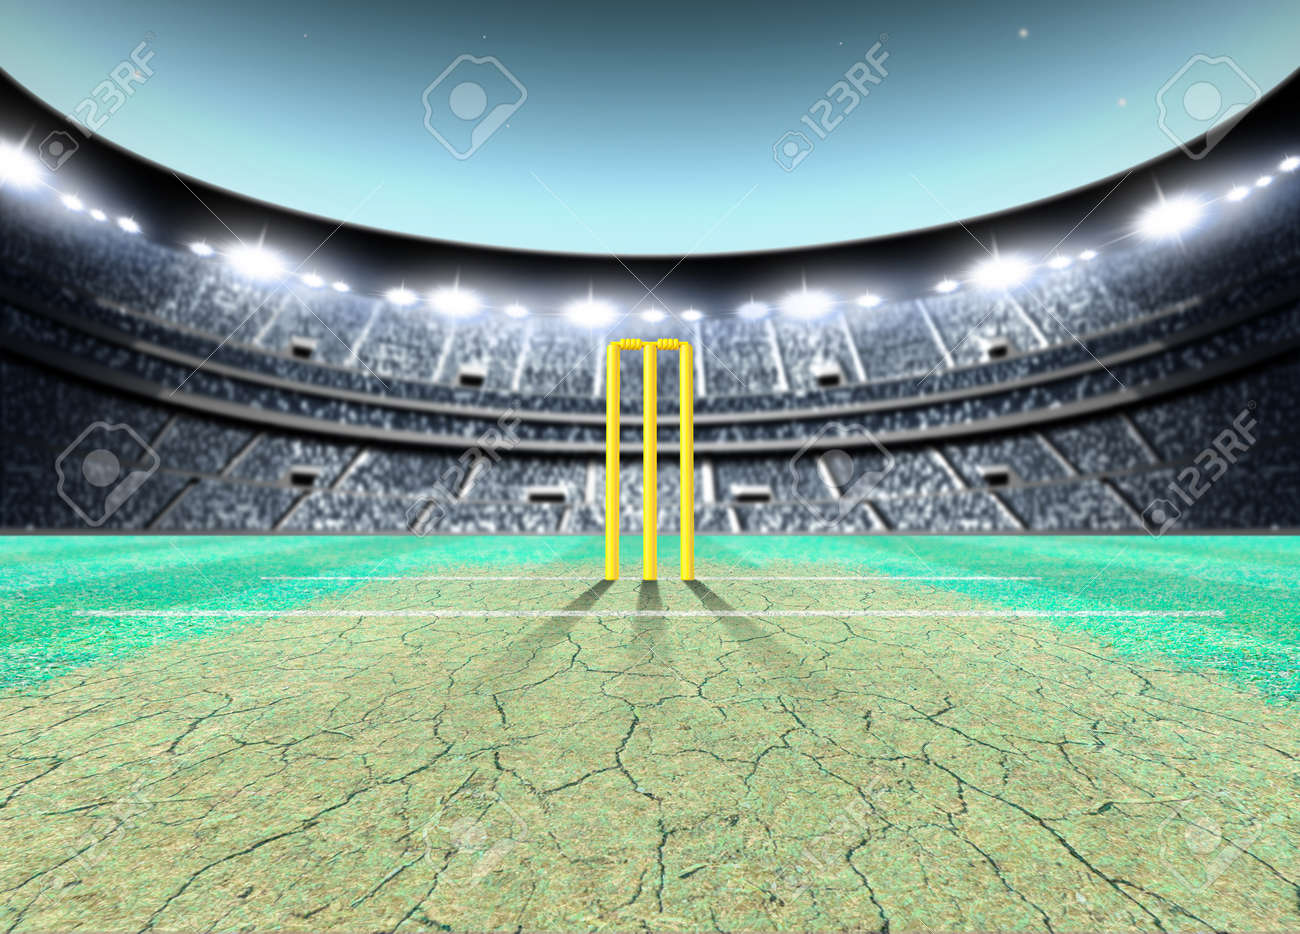 a generic seated cricket stadium with cracked pitch and yellow